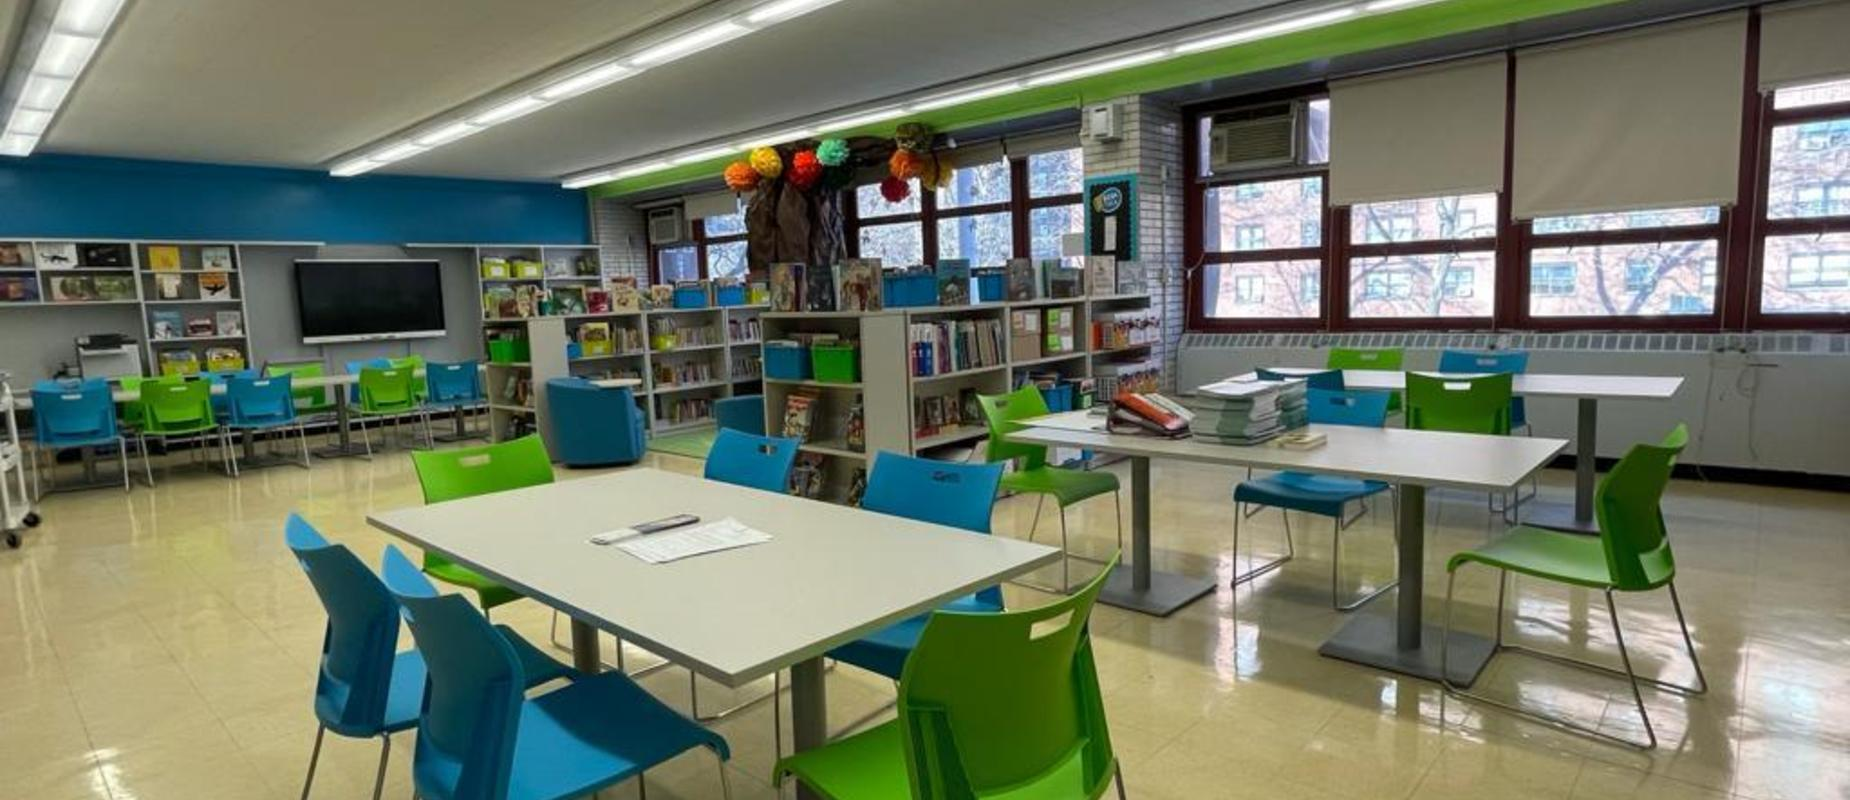 PSMS29 School Library